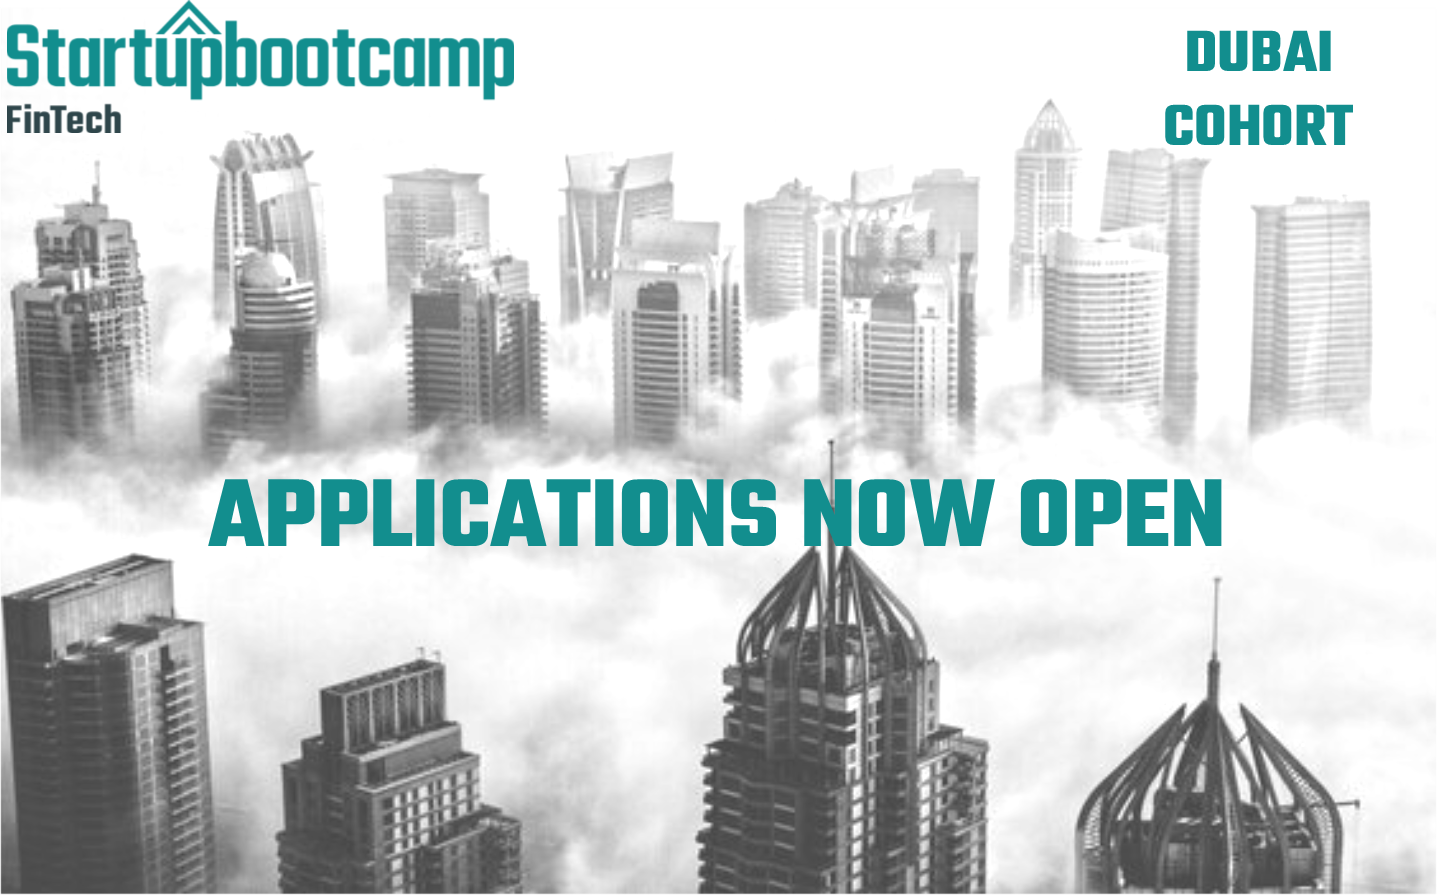 Startupbootcamp FinTech Accelerator Program – Dubai 2020 (Funding available)